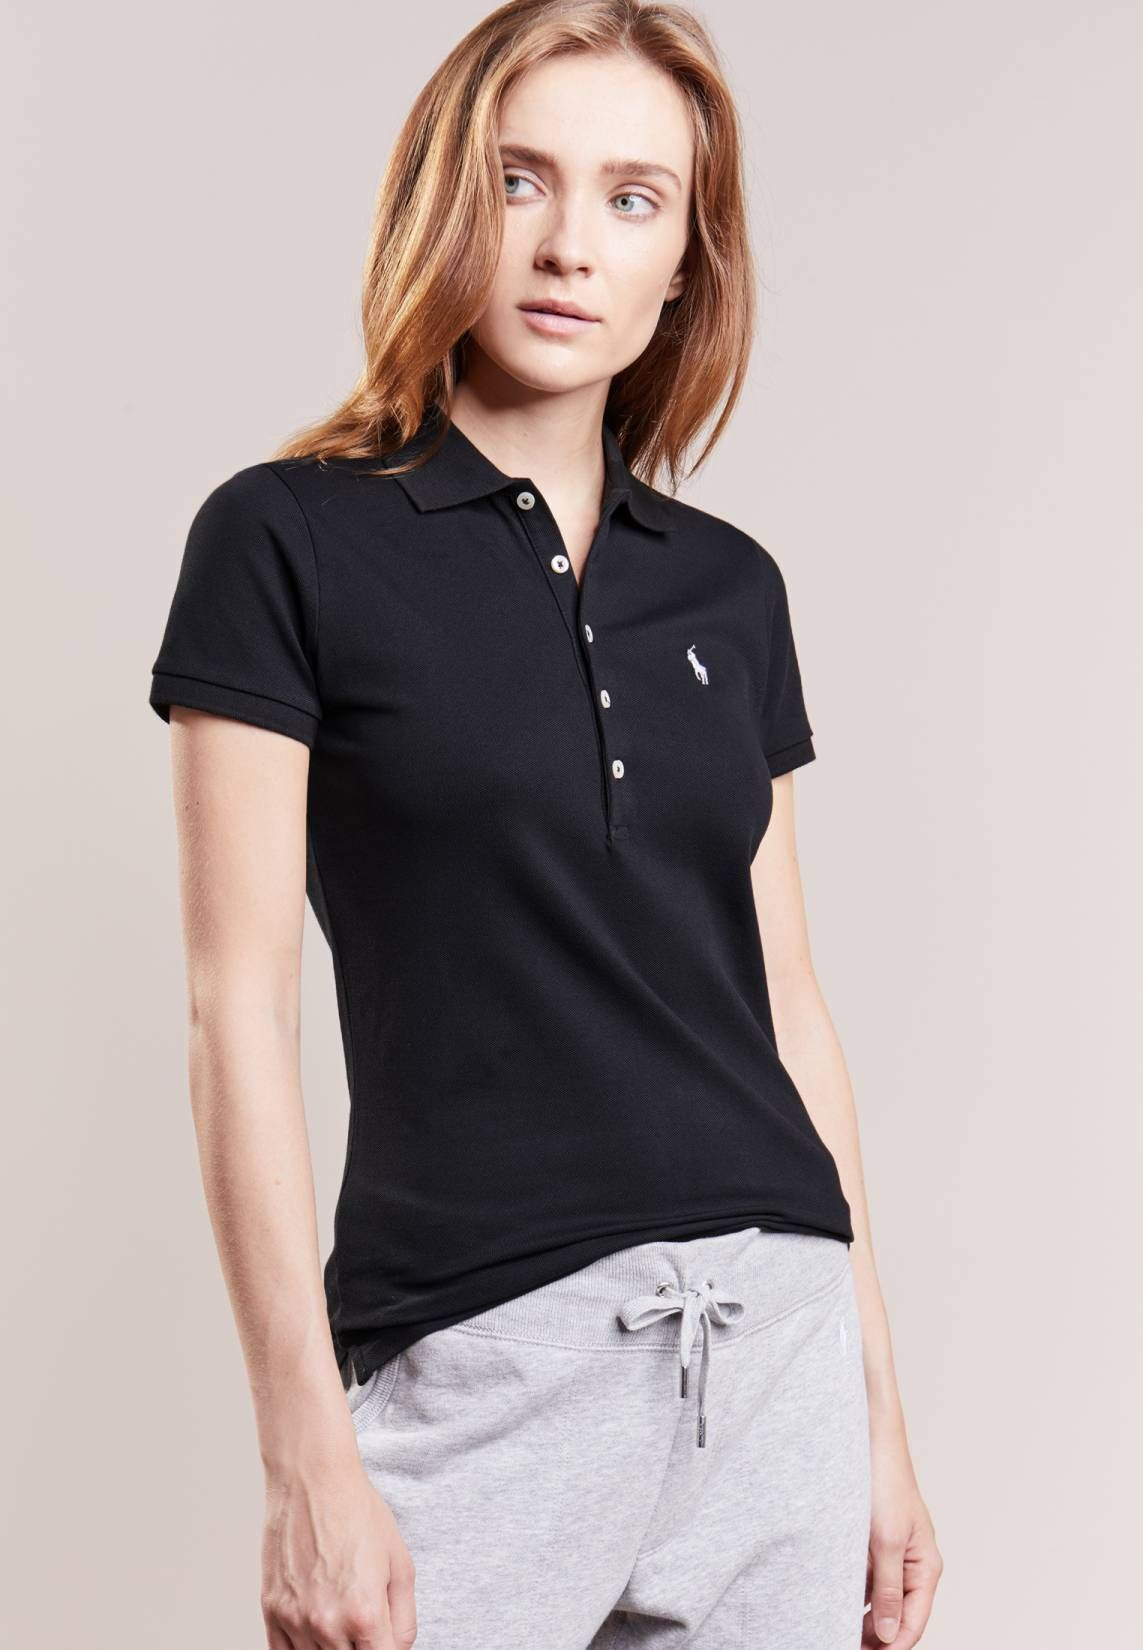 a08f3148633 Polo Ralph Lauren. JULIE SKINNY FIT - Polo shirt - black/white. Fit:small.  Outer fabric material:97% cotton, 3% spandex. Our model's height:Our model  is ...